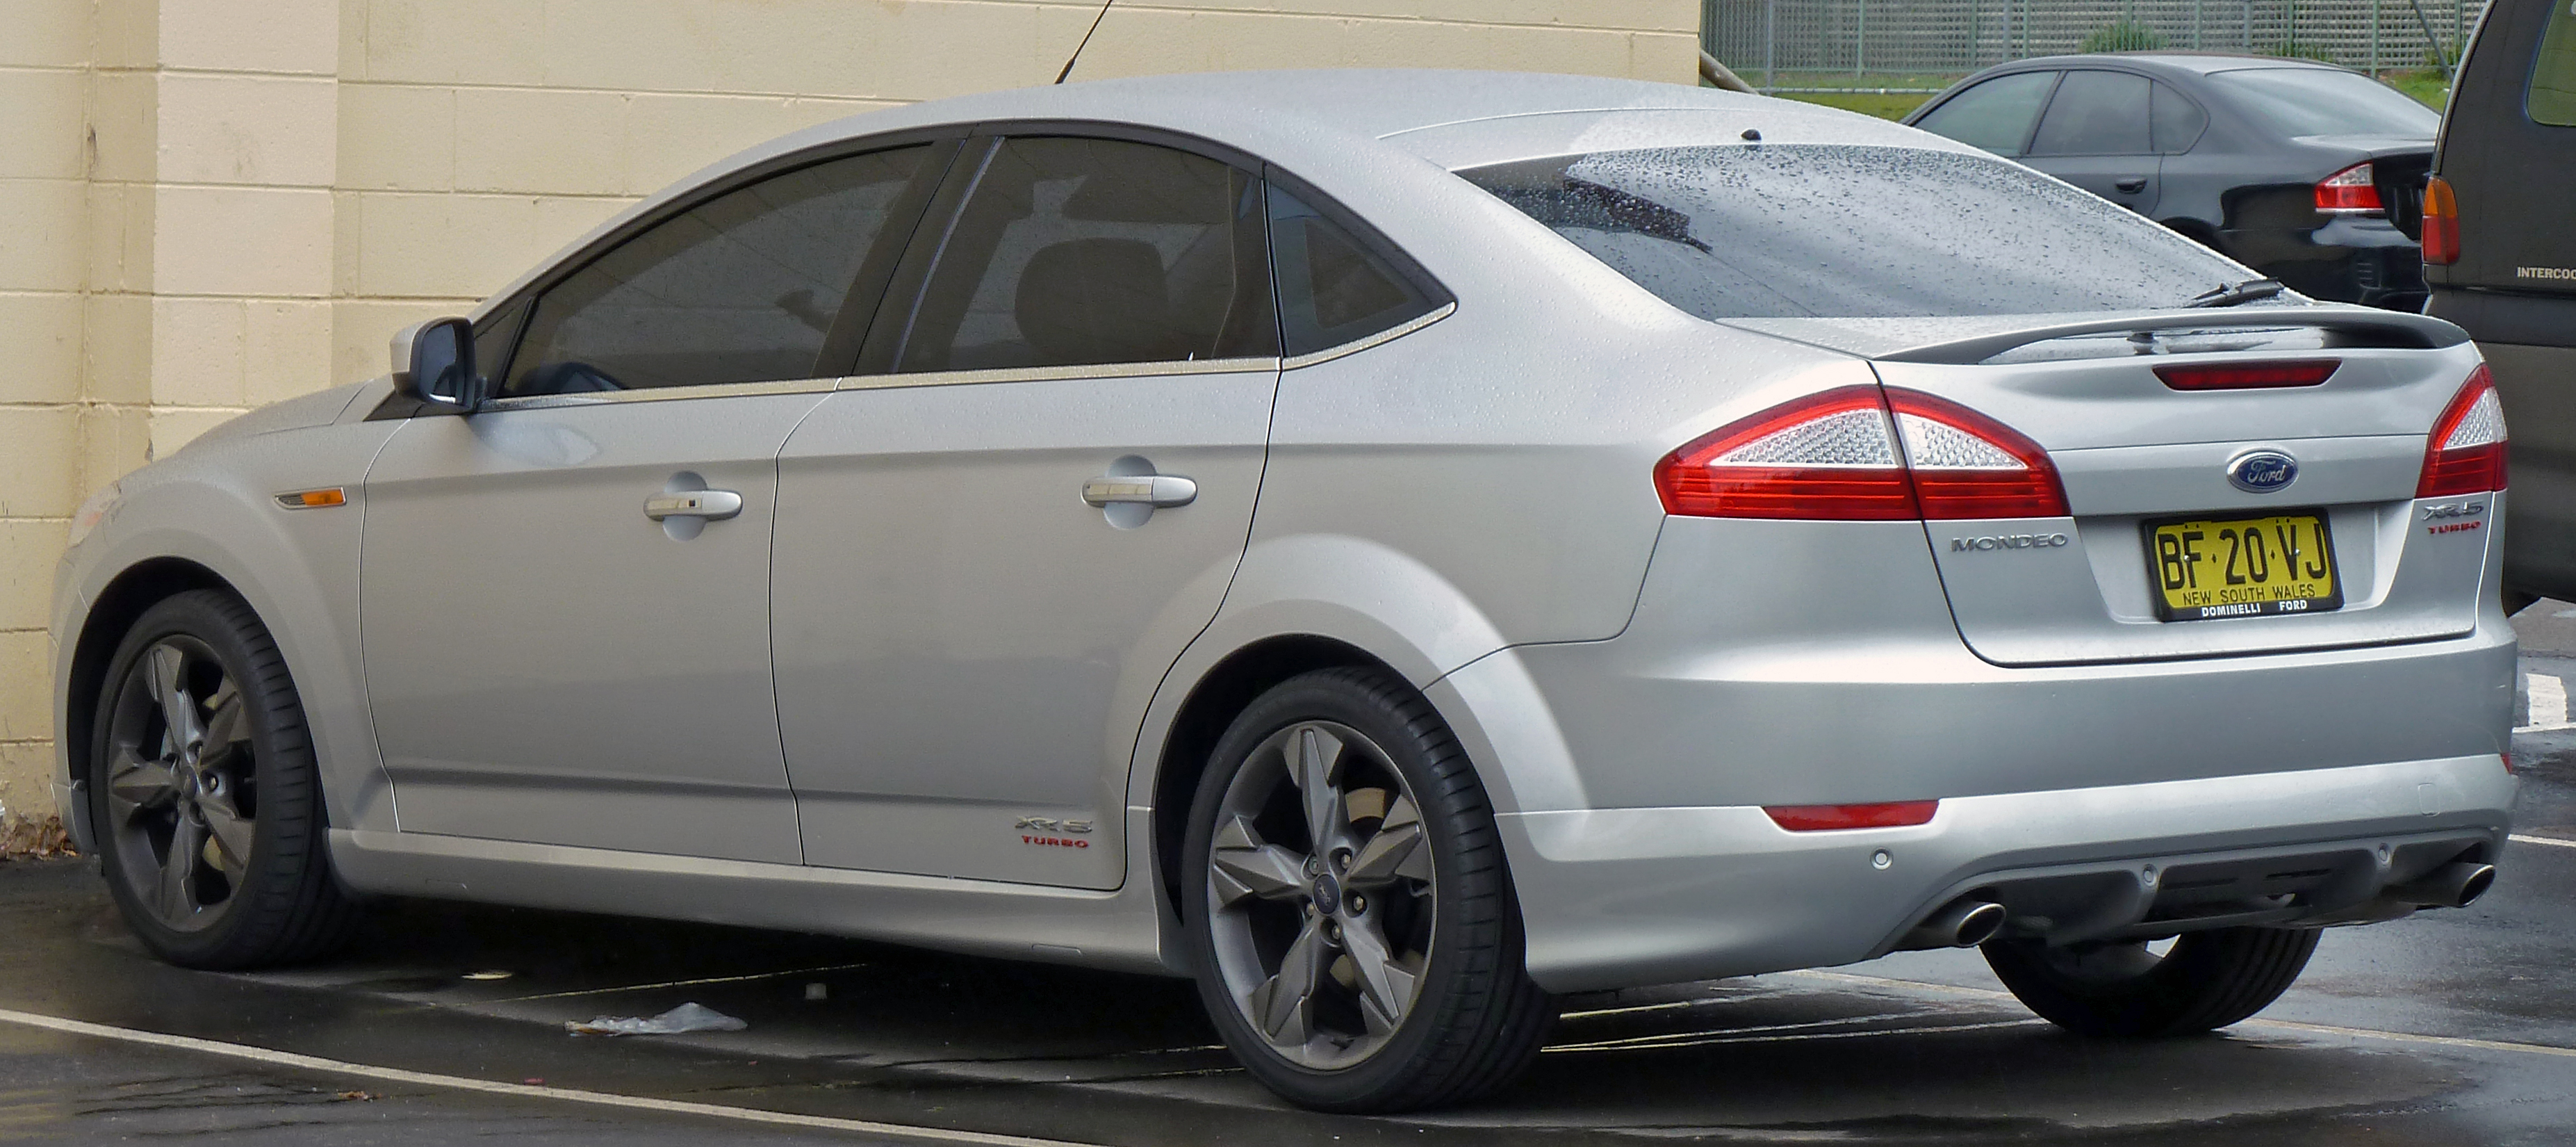 2010 ford mondeo iv hatchback pictures information and specs auto. Black Bedroom Furniture Sets. Home Design Ideas